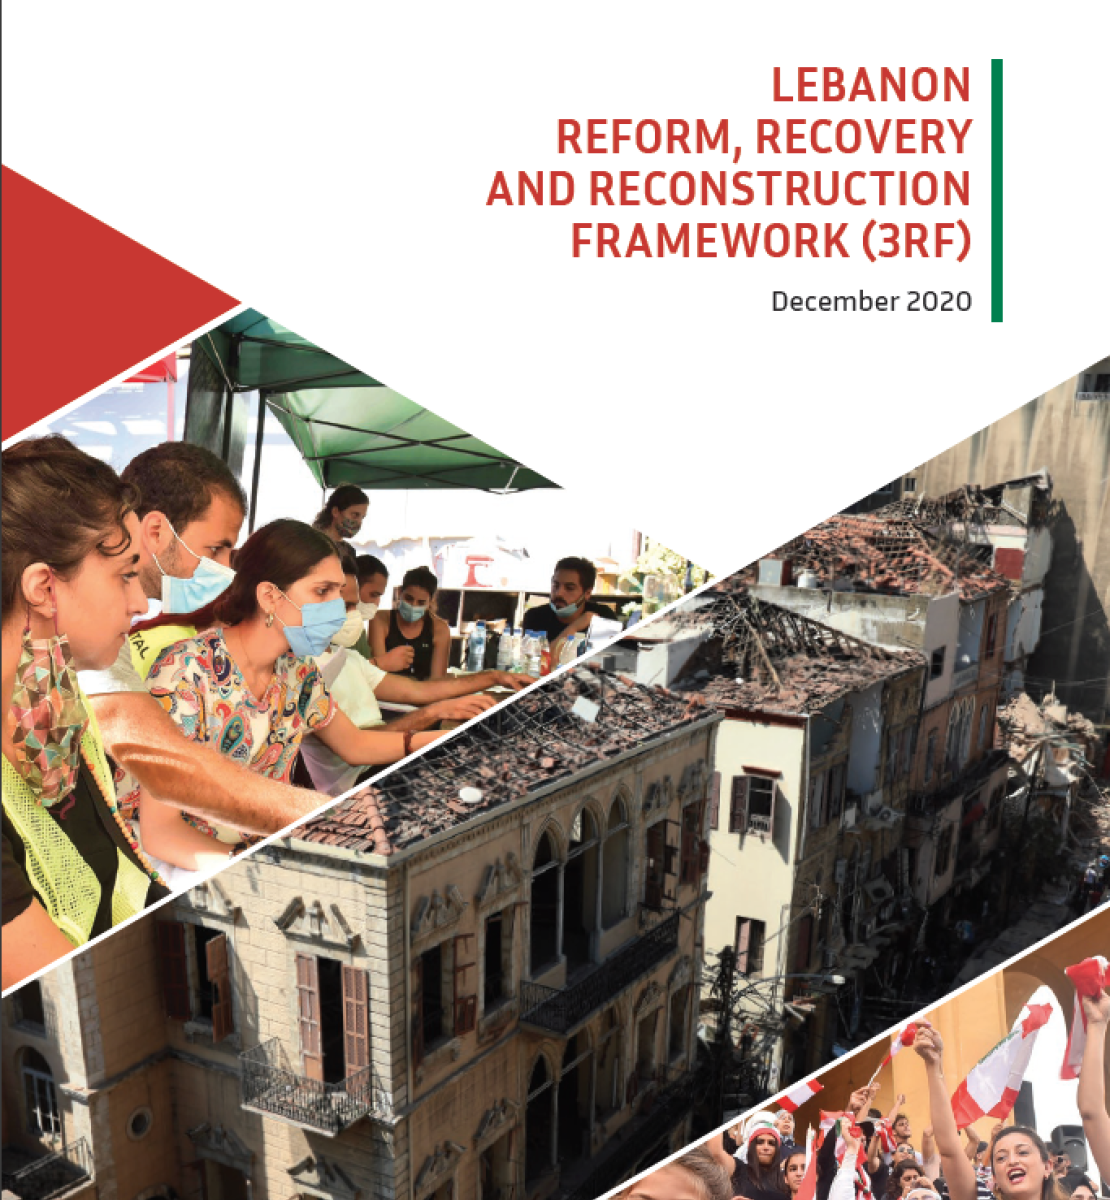 Cover shows the title in white underneath the logos for the EU, UN and World Bank Group. Underneath the title is a collage of three images showing people in masks at a tent, an arial view of buildings with damage and, lastly, a small girl holding a sign in front of a crowd holding flags.